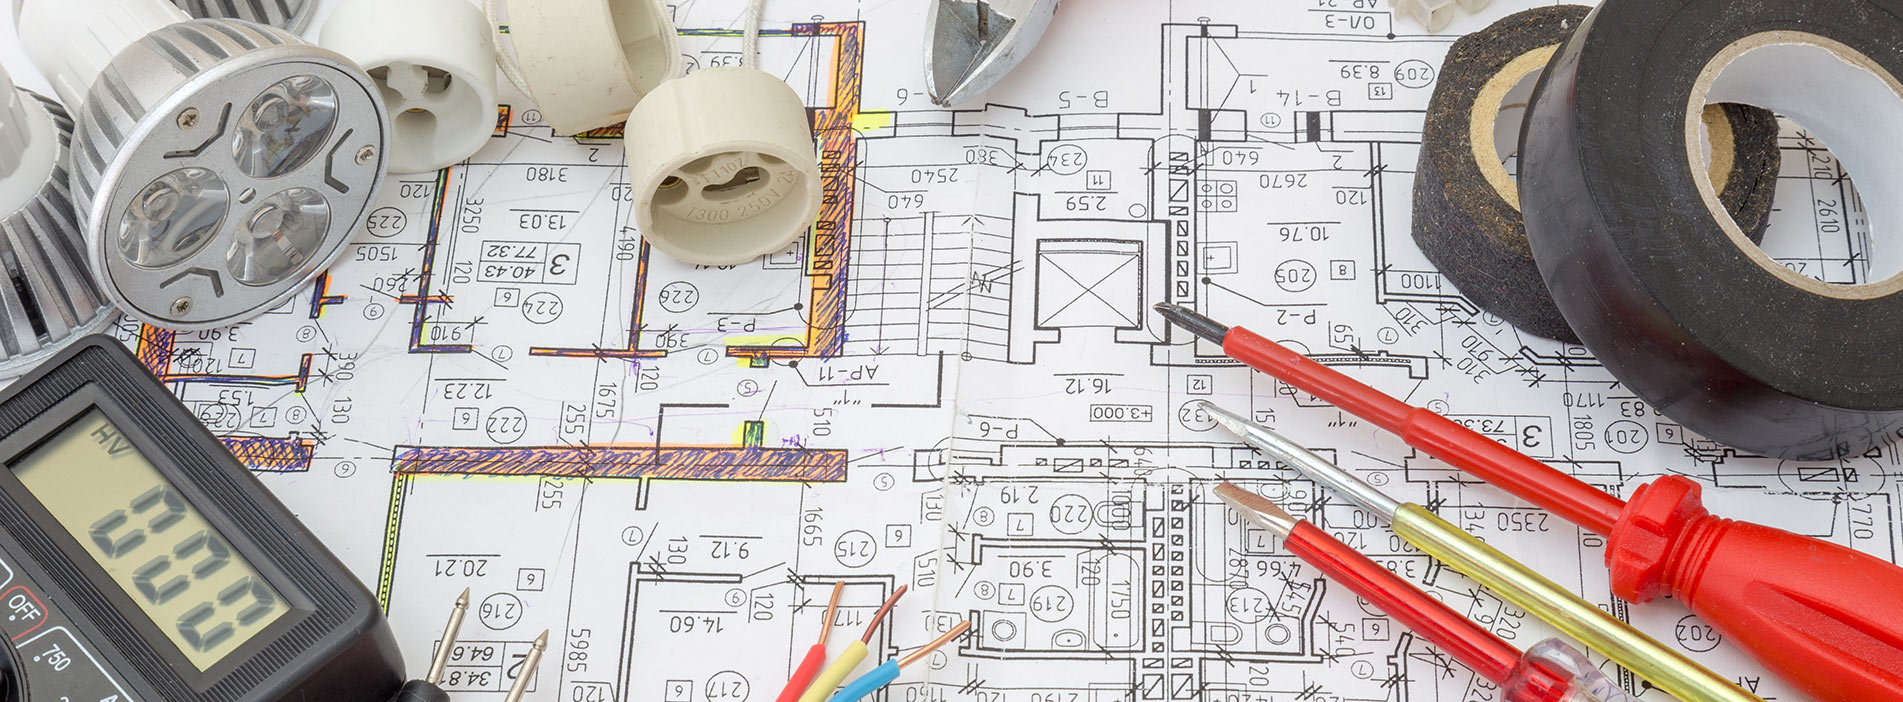 Electrician In Bakersfield Ca Electrical Contractor Also Residential Home Wiring On Data Cable Diagram For Homes Providing Quality Commercial Services Since 1982